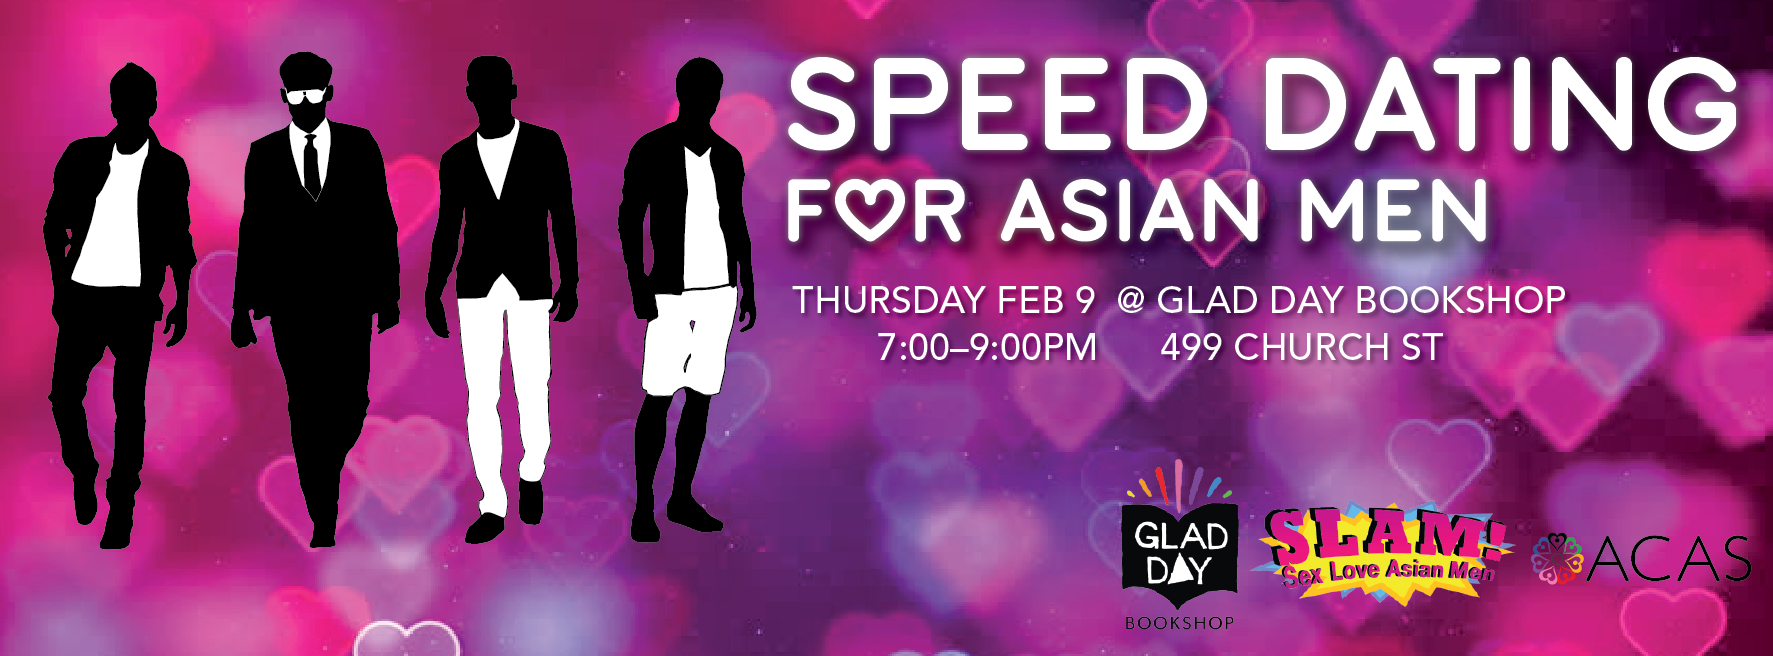 Asian speed dating philadelphia